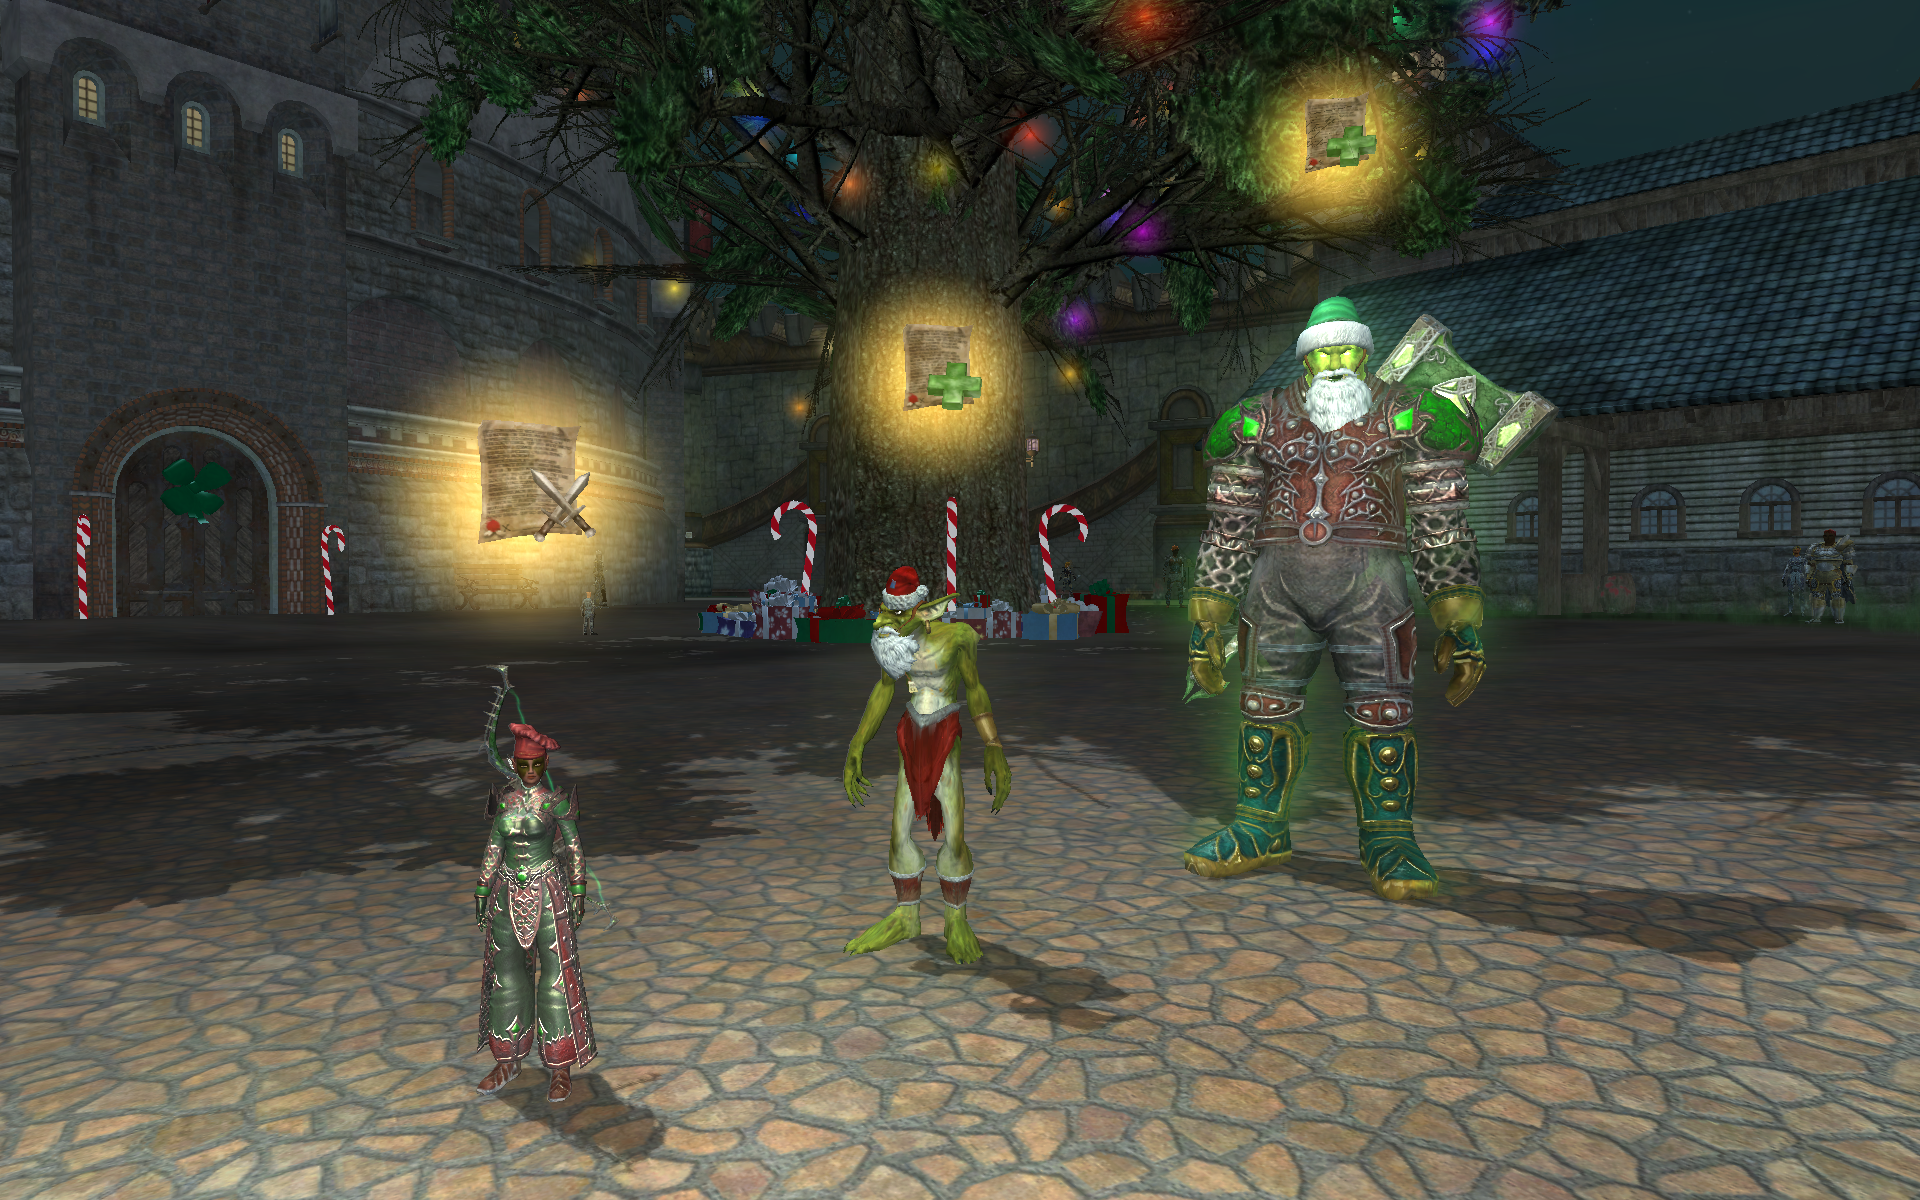 EverQuest II: It's Time to Spread Frostfell Cheer! - Pivotal